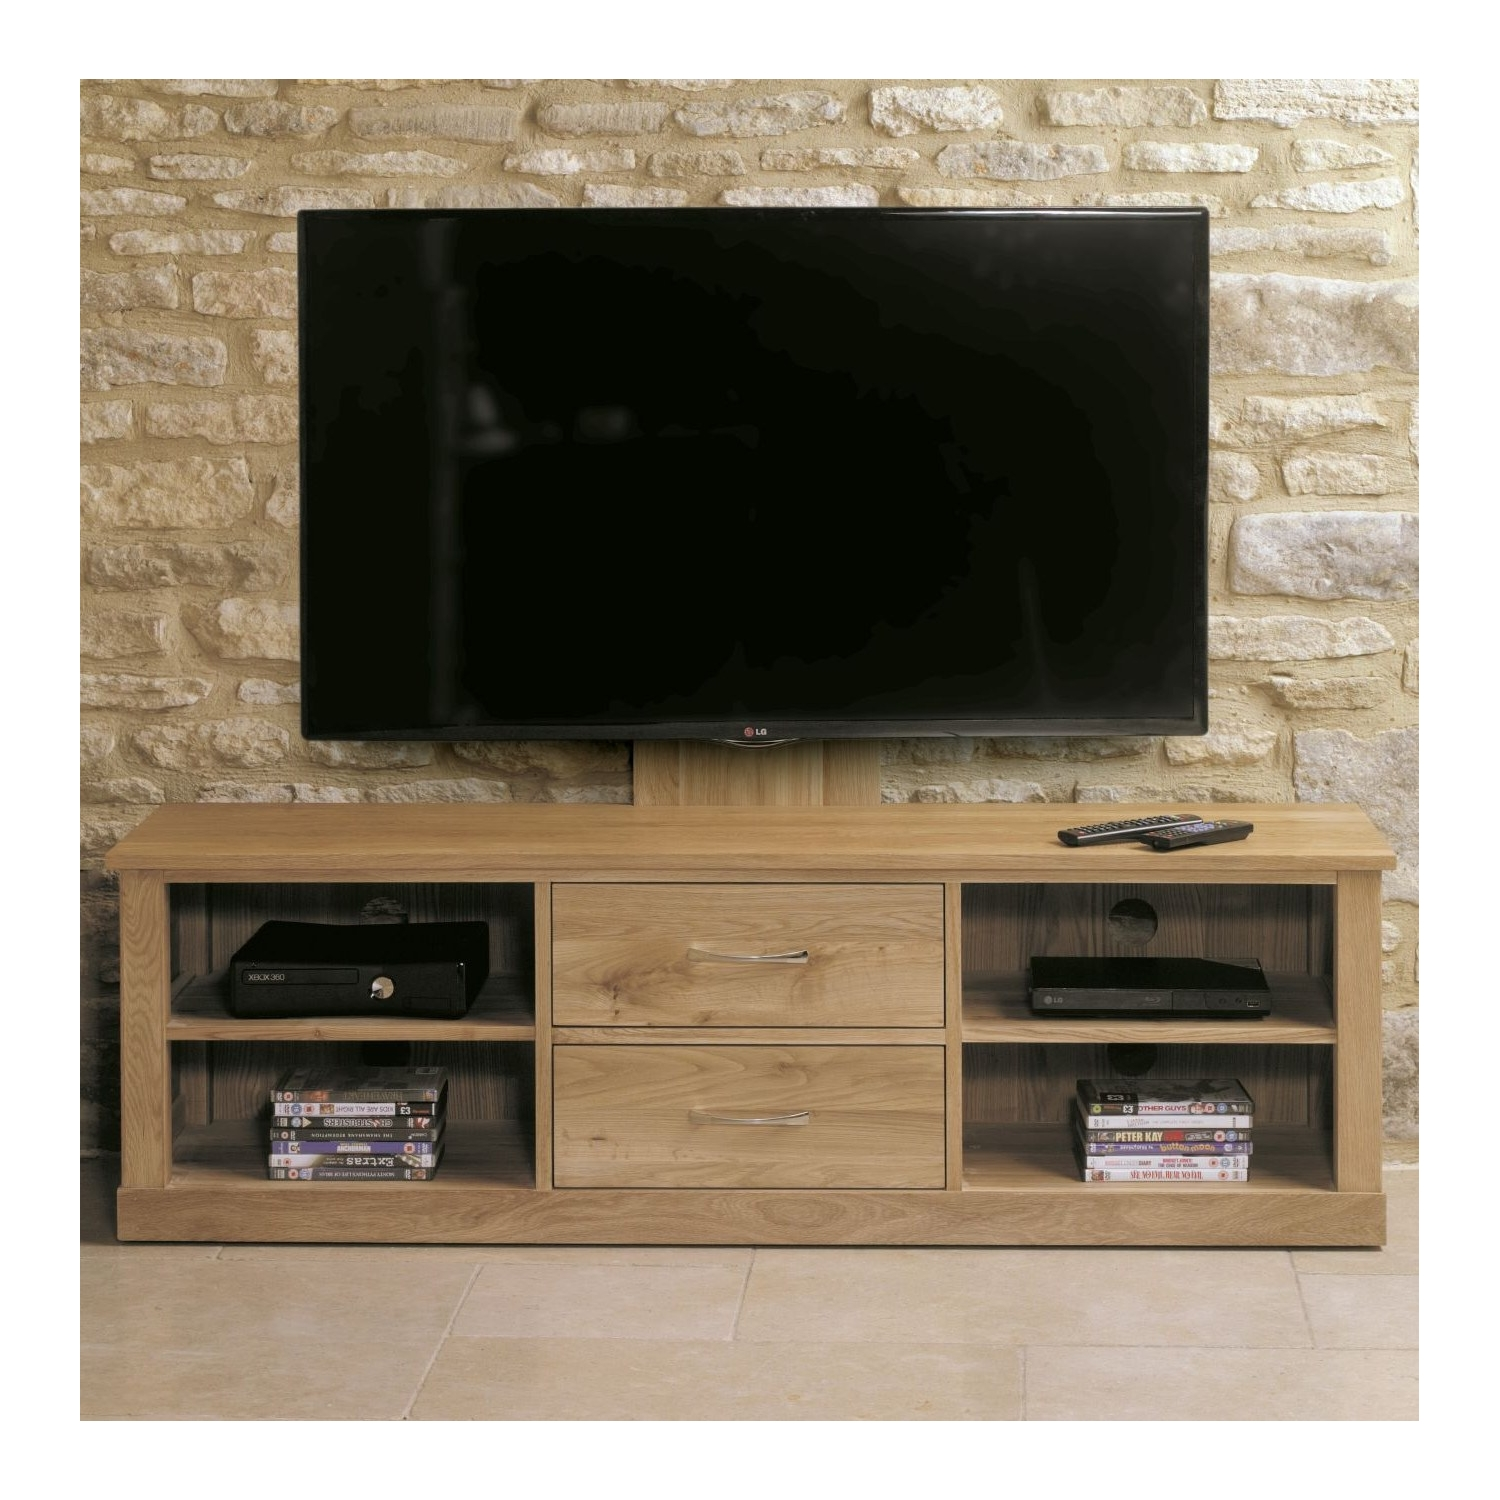 Details About Mobel Oak Living Room Furniture Wall Mounted Television Cabinet With Drawers